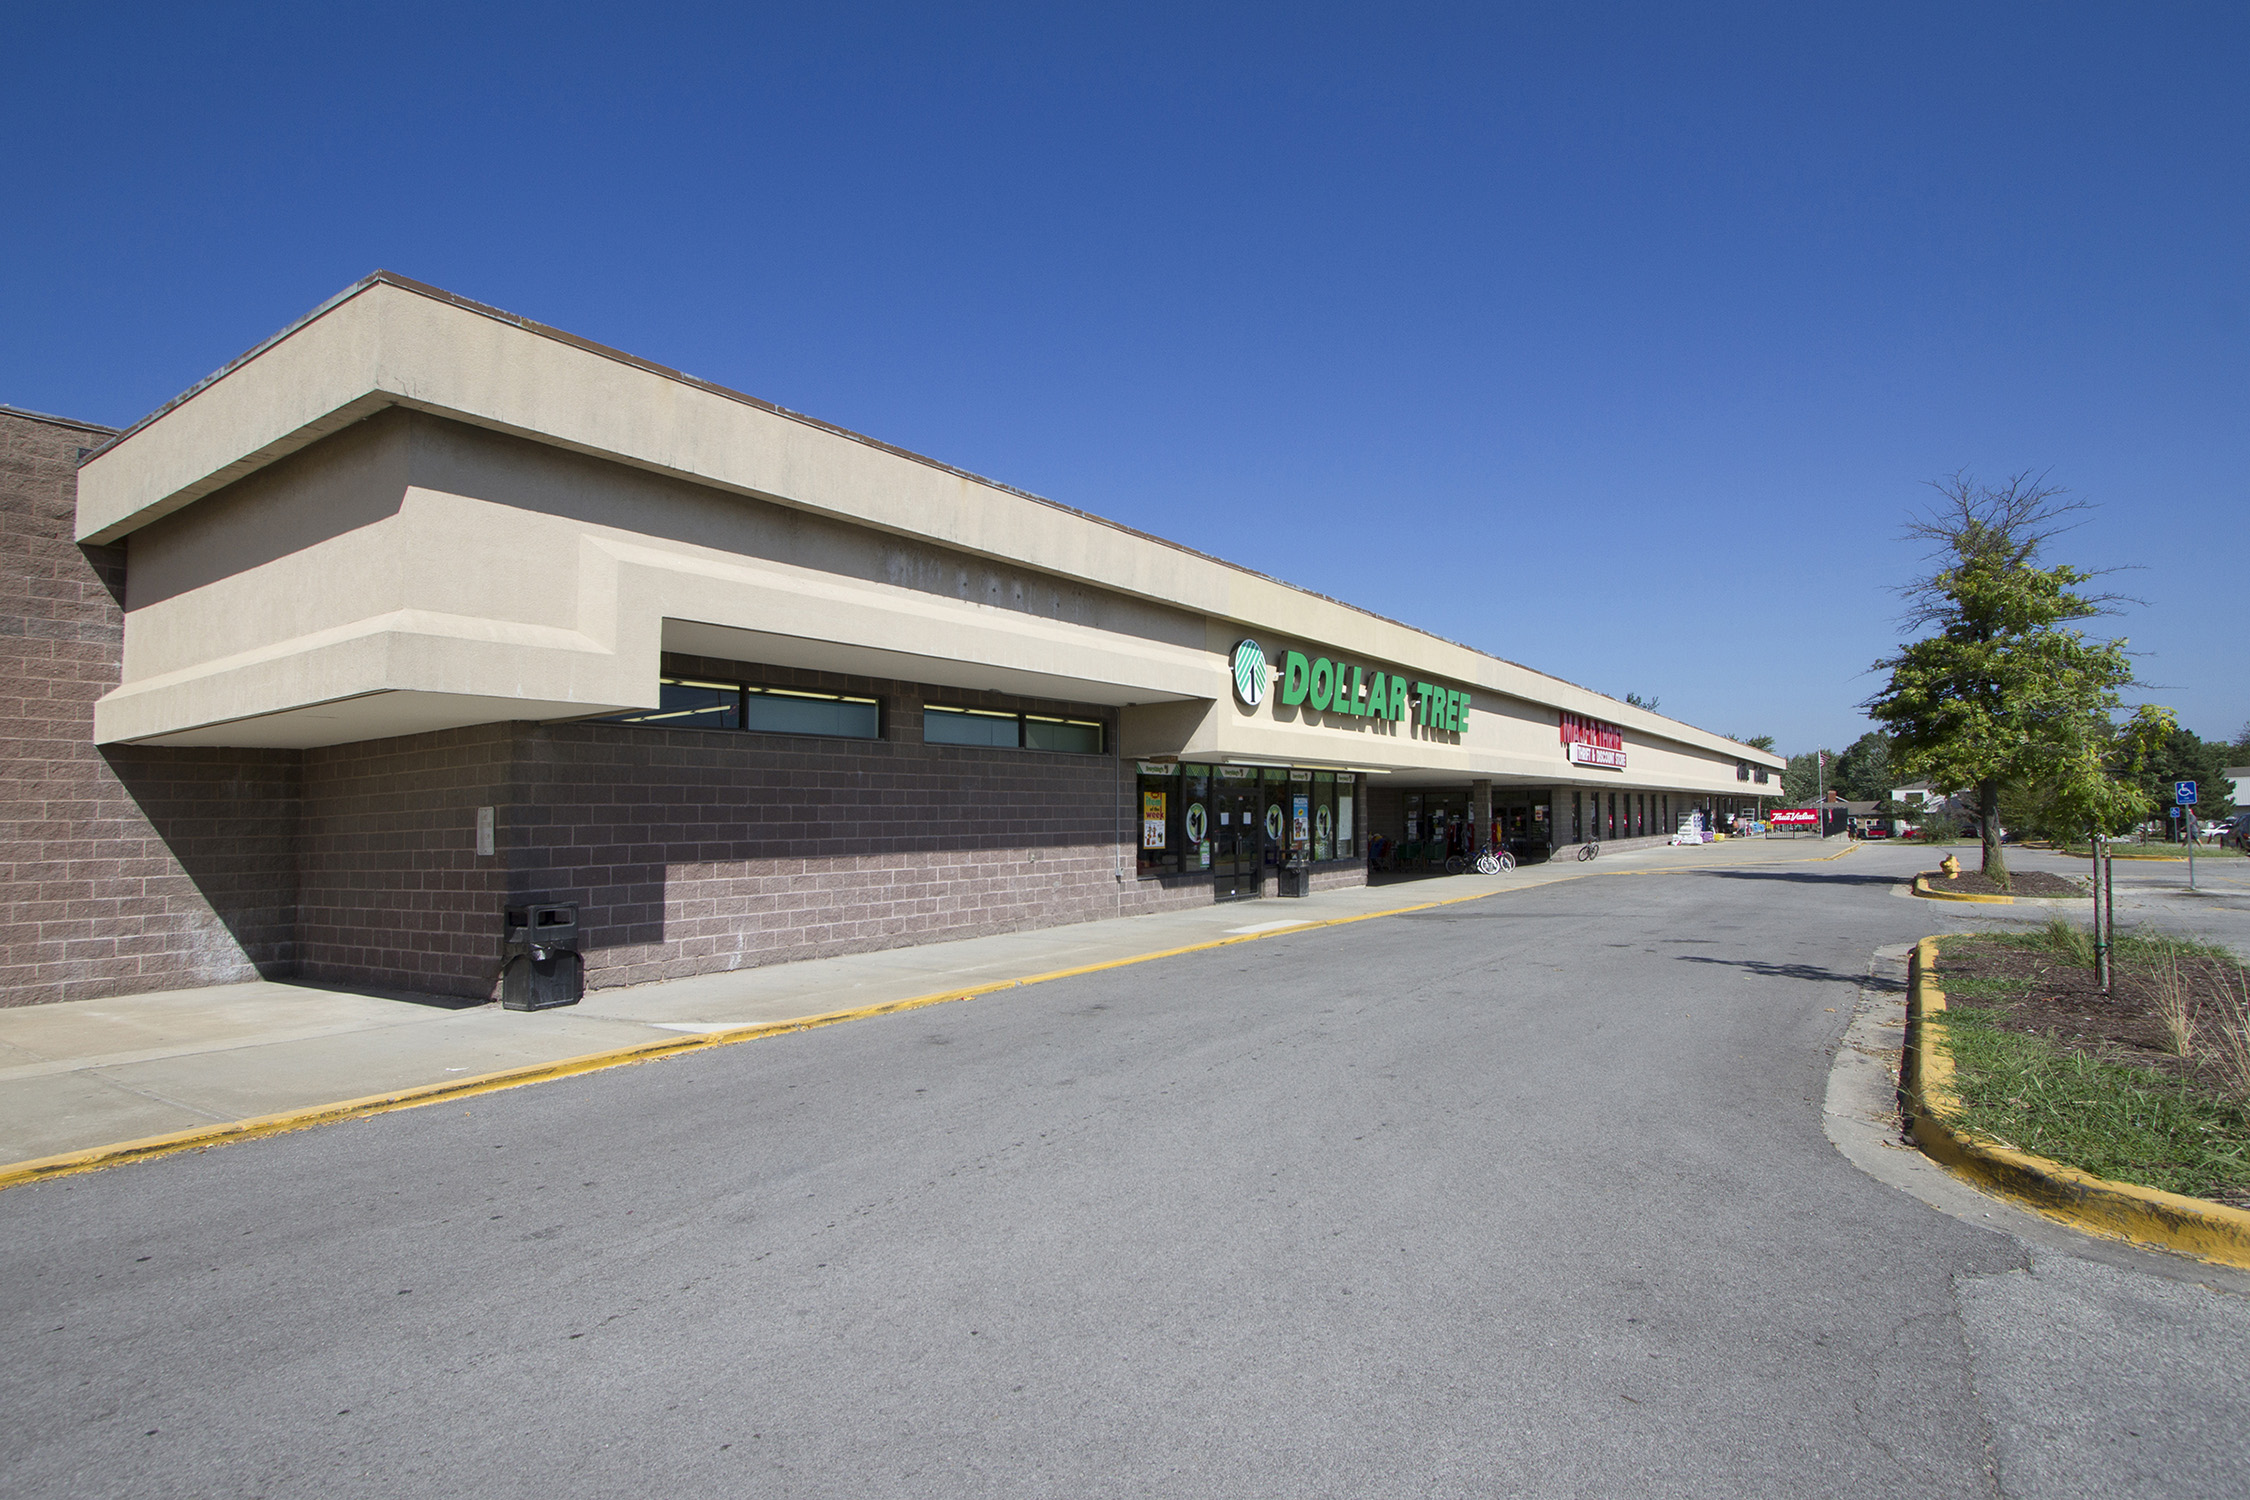 Southwest Plaza Shopping Center is located at 873 S. Parker Street in Olathe, Kan.